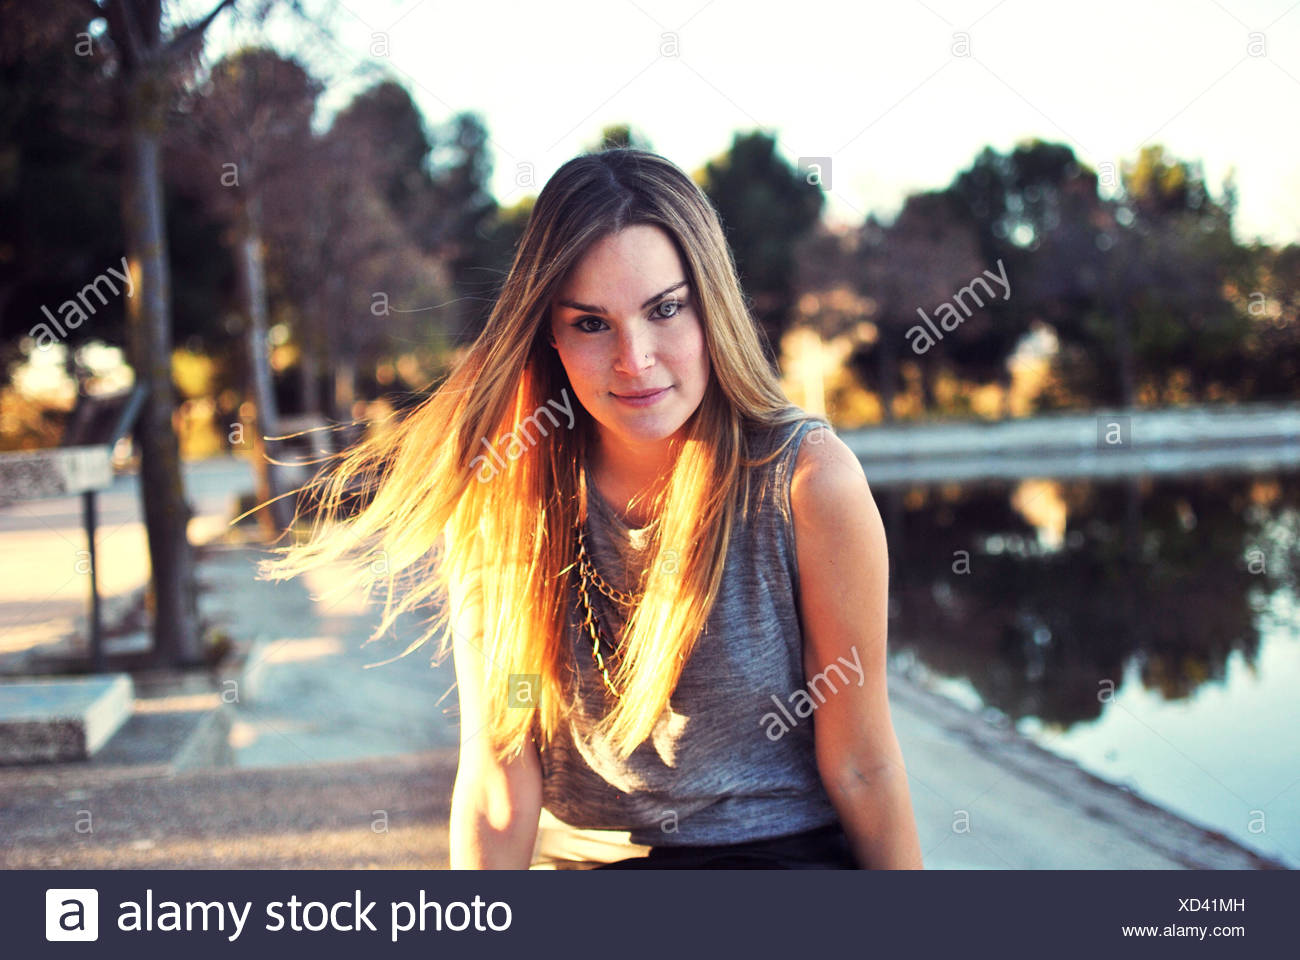 Portrait of young woman outdoors - Stock Image